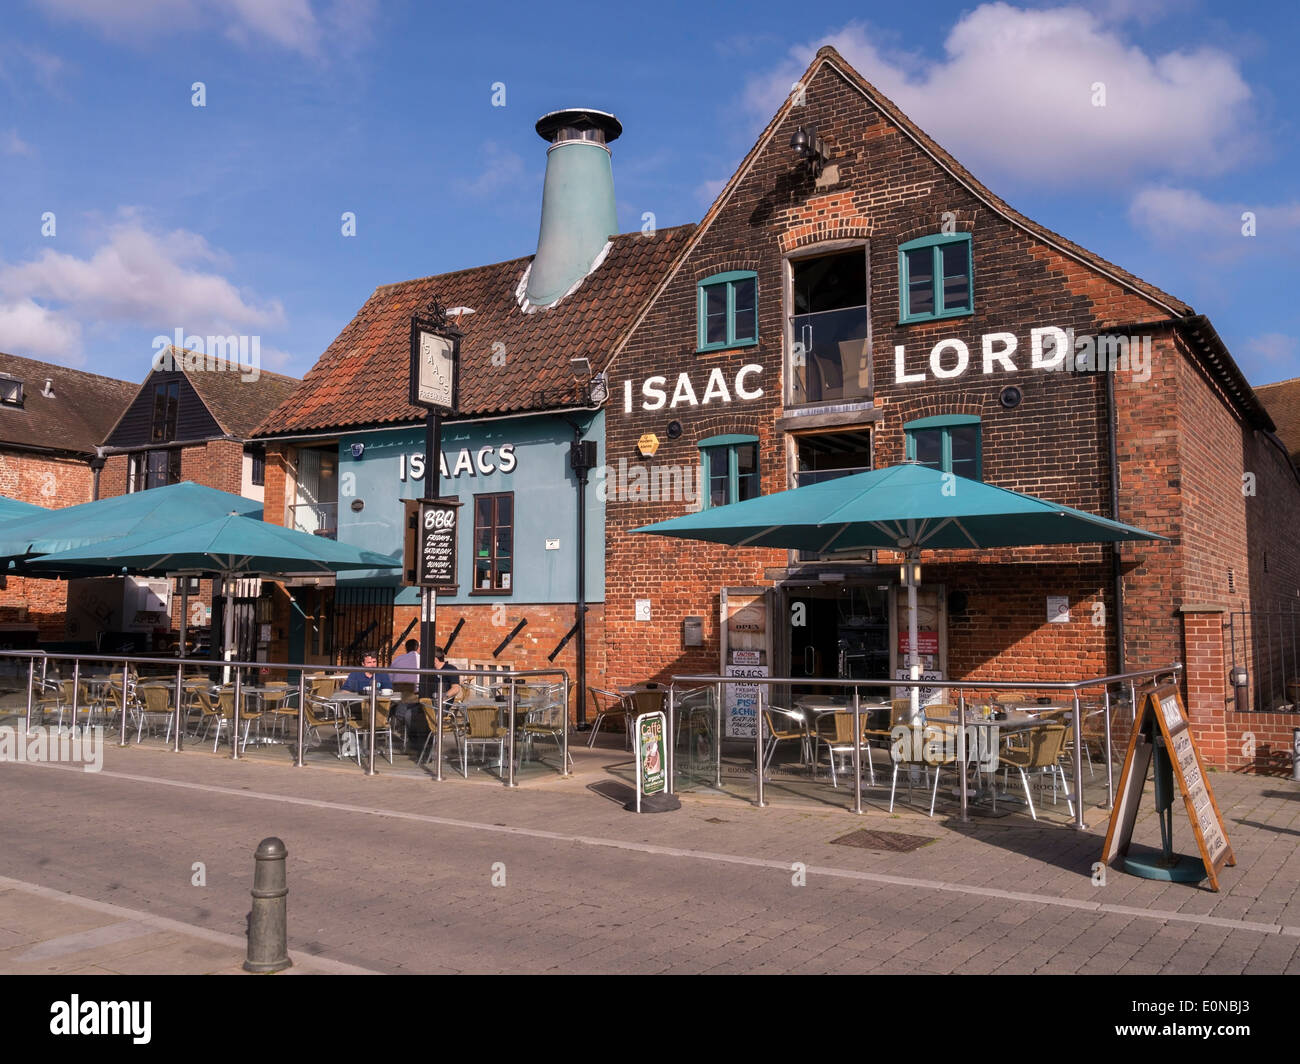 Restaurant Trossingen Old Isaac Lord Isaacs Restaurant And Pub On The Quayside